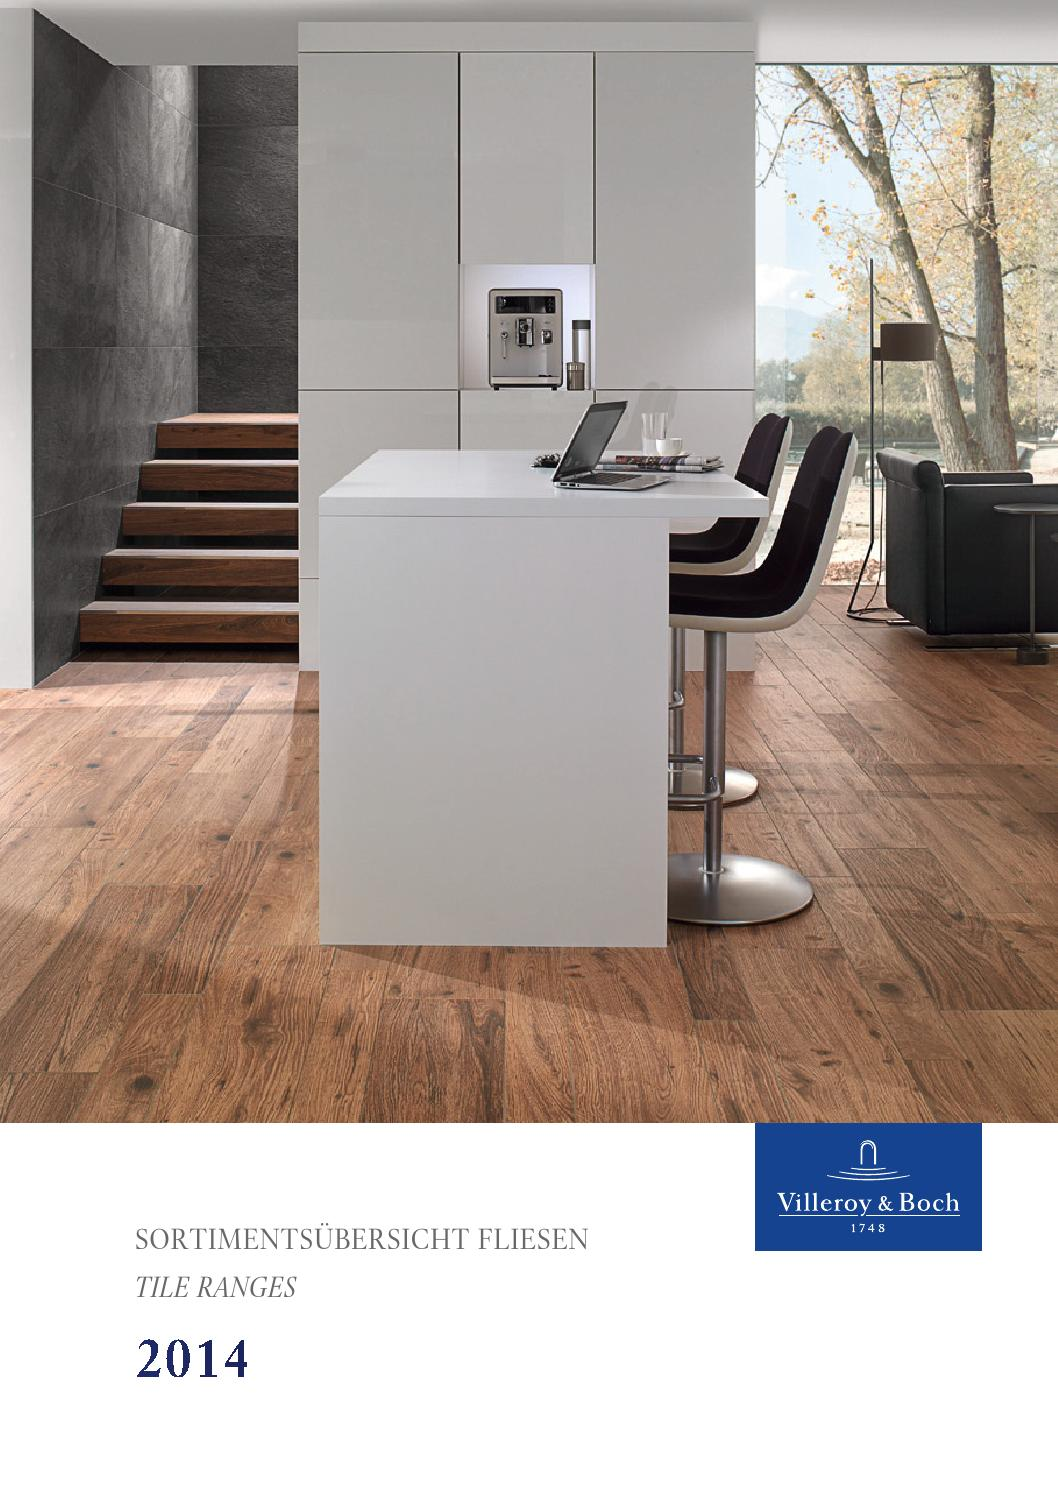 Villeroy & Boch Tile Ranges 2014 by IRIS - issuu